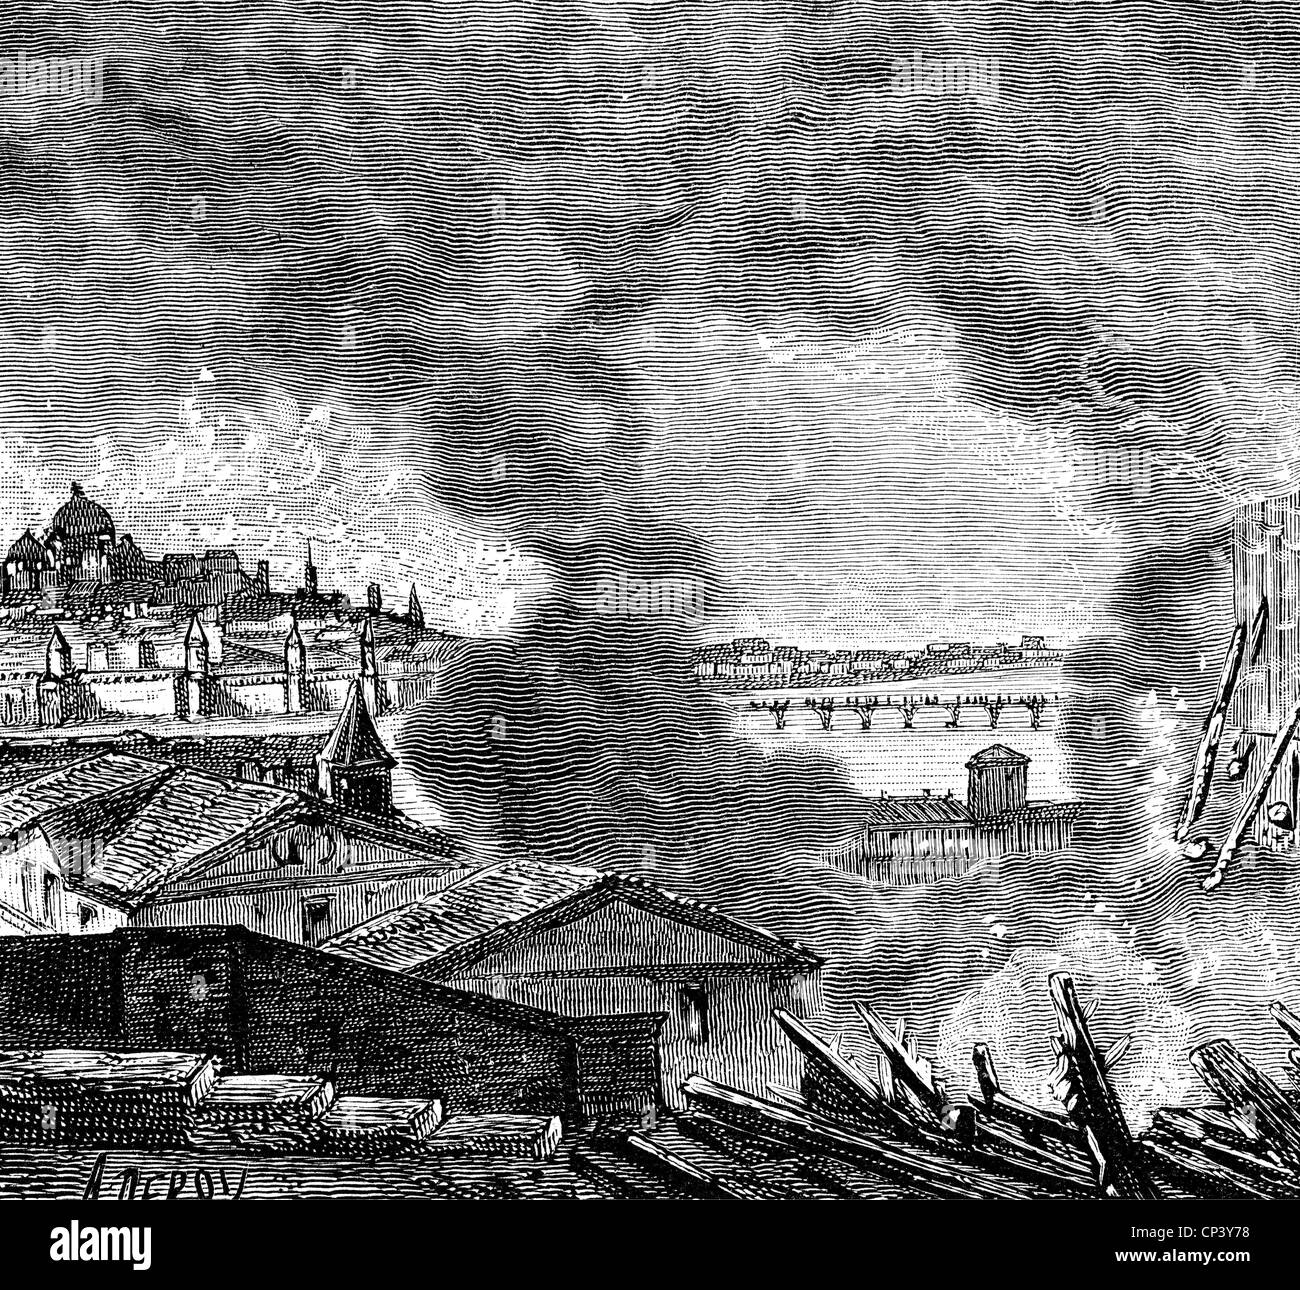 events, War of the Sixth Coalition 1812 - 1814, Russian campaign, fire of Moscow, 16.- 20.9.1812, wood engraving, - Stock Image